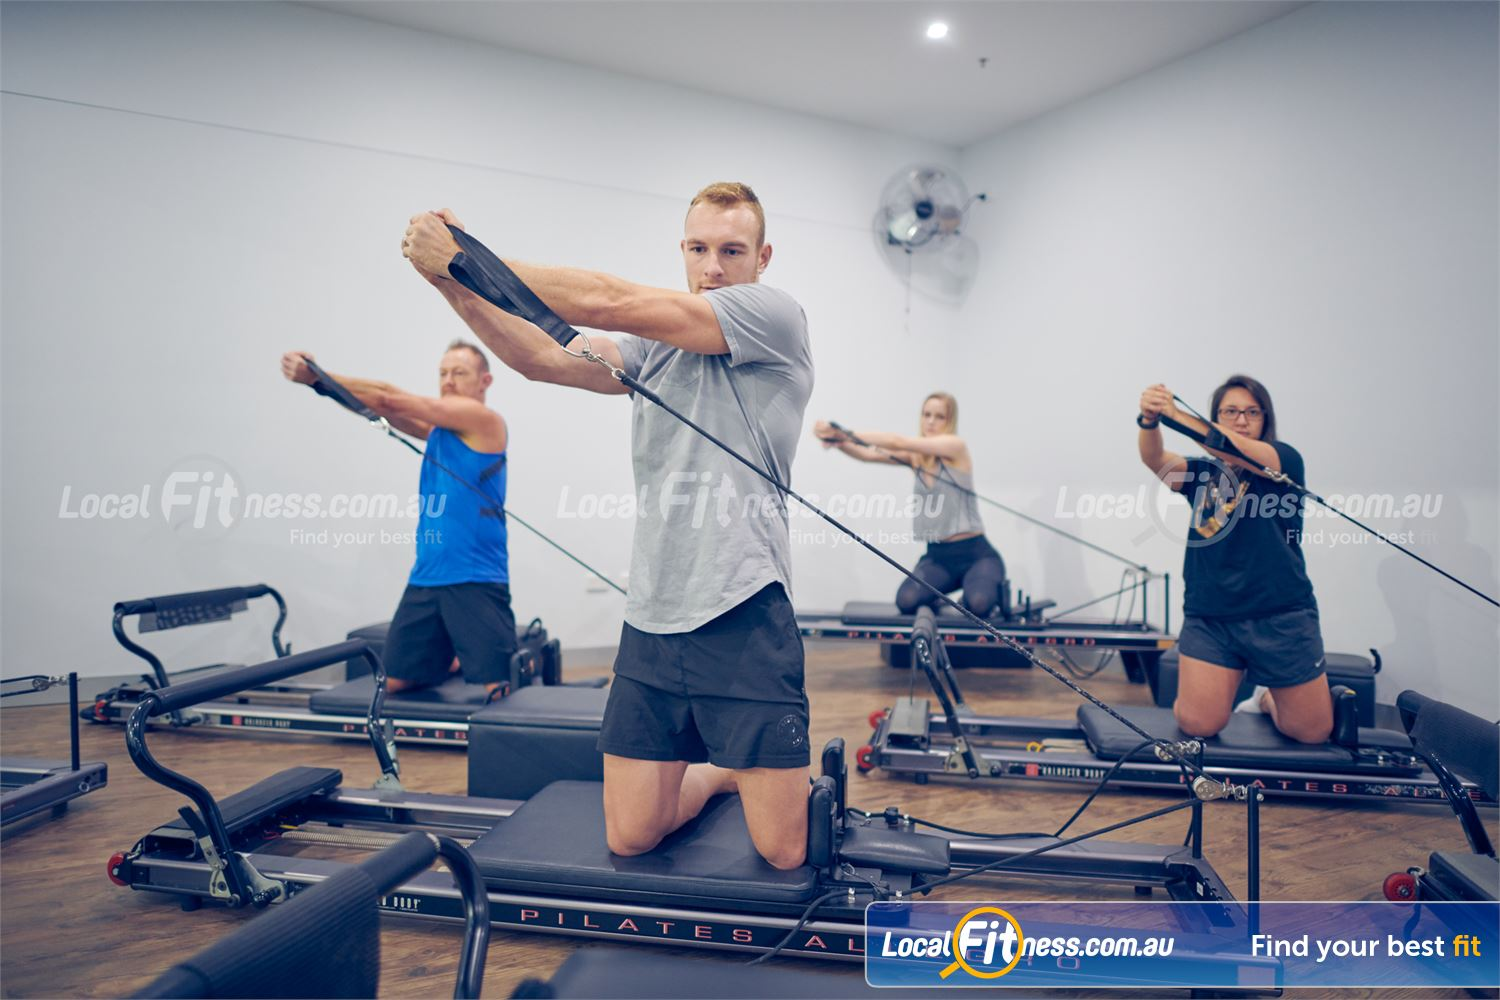 Element Fitness Health Club Near Vermont Increase strength, flexibility and more in our Nunawading Reformer Pilates classes.